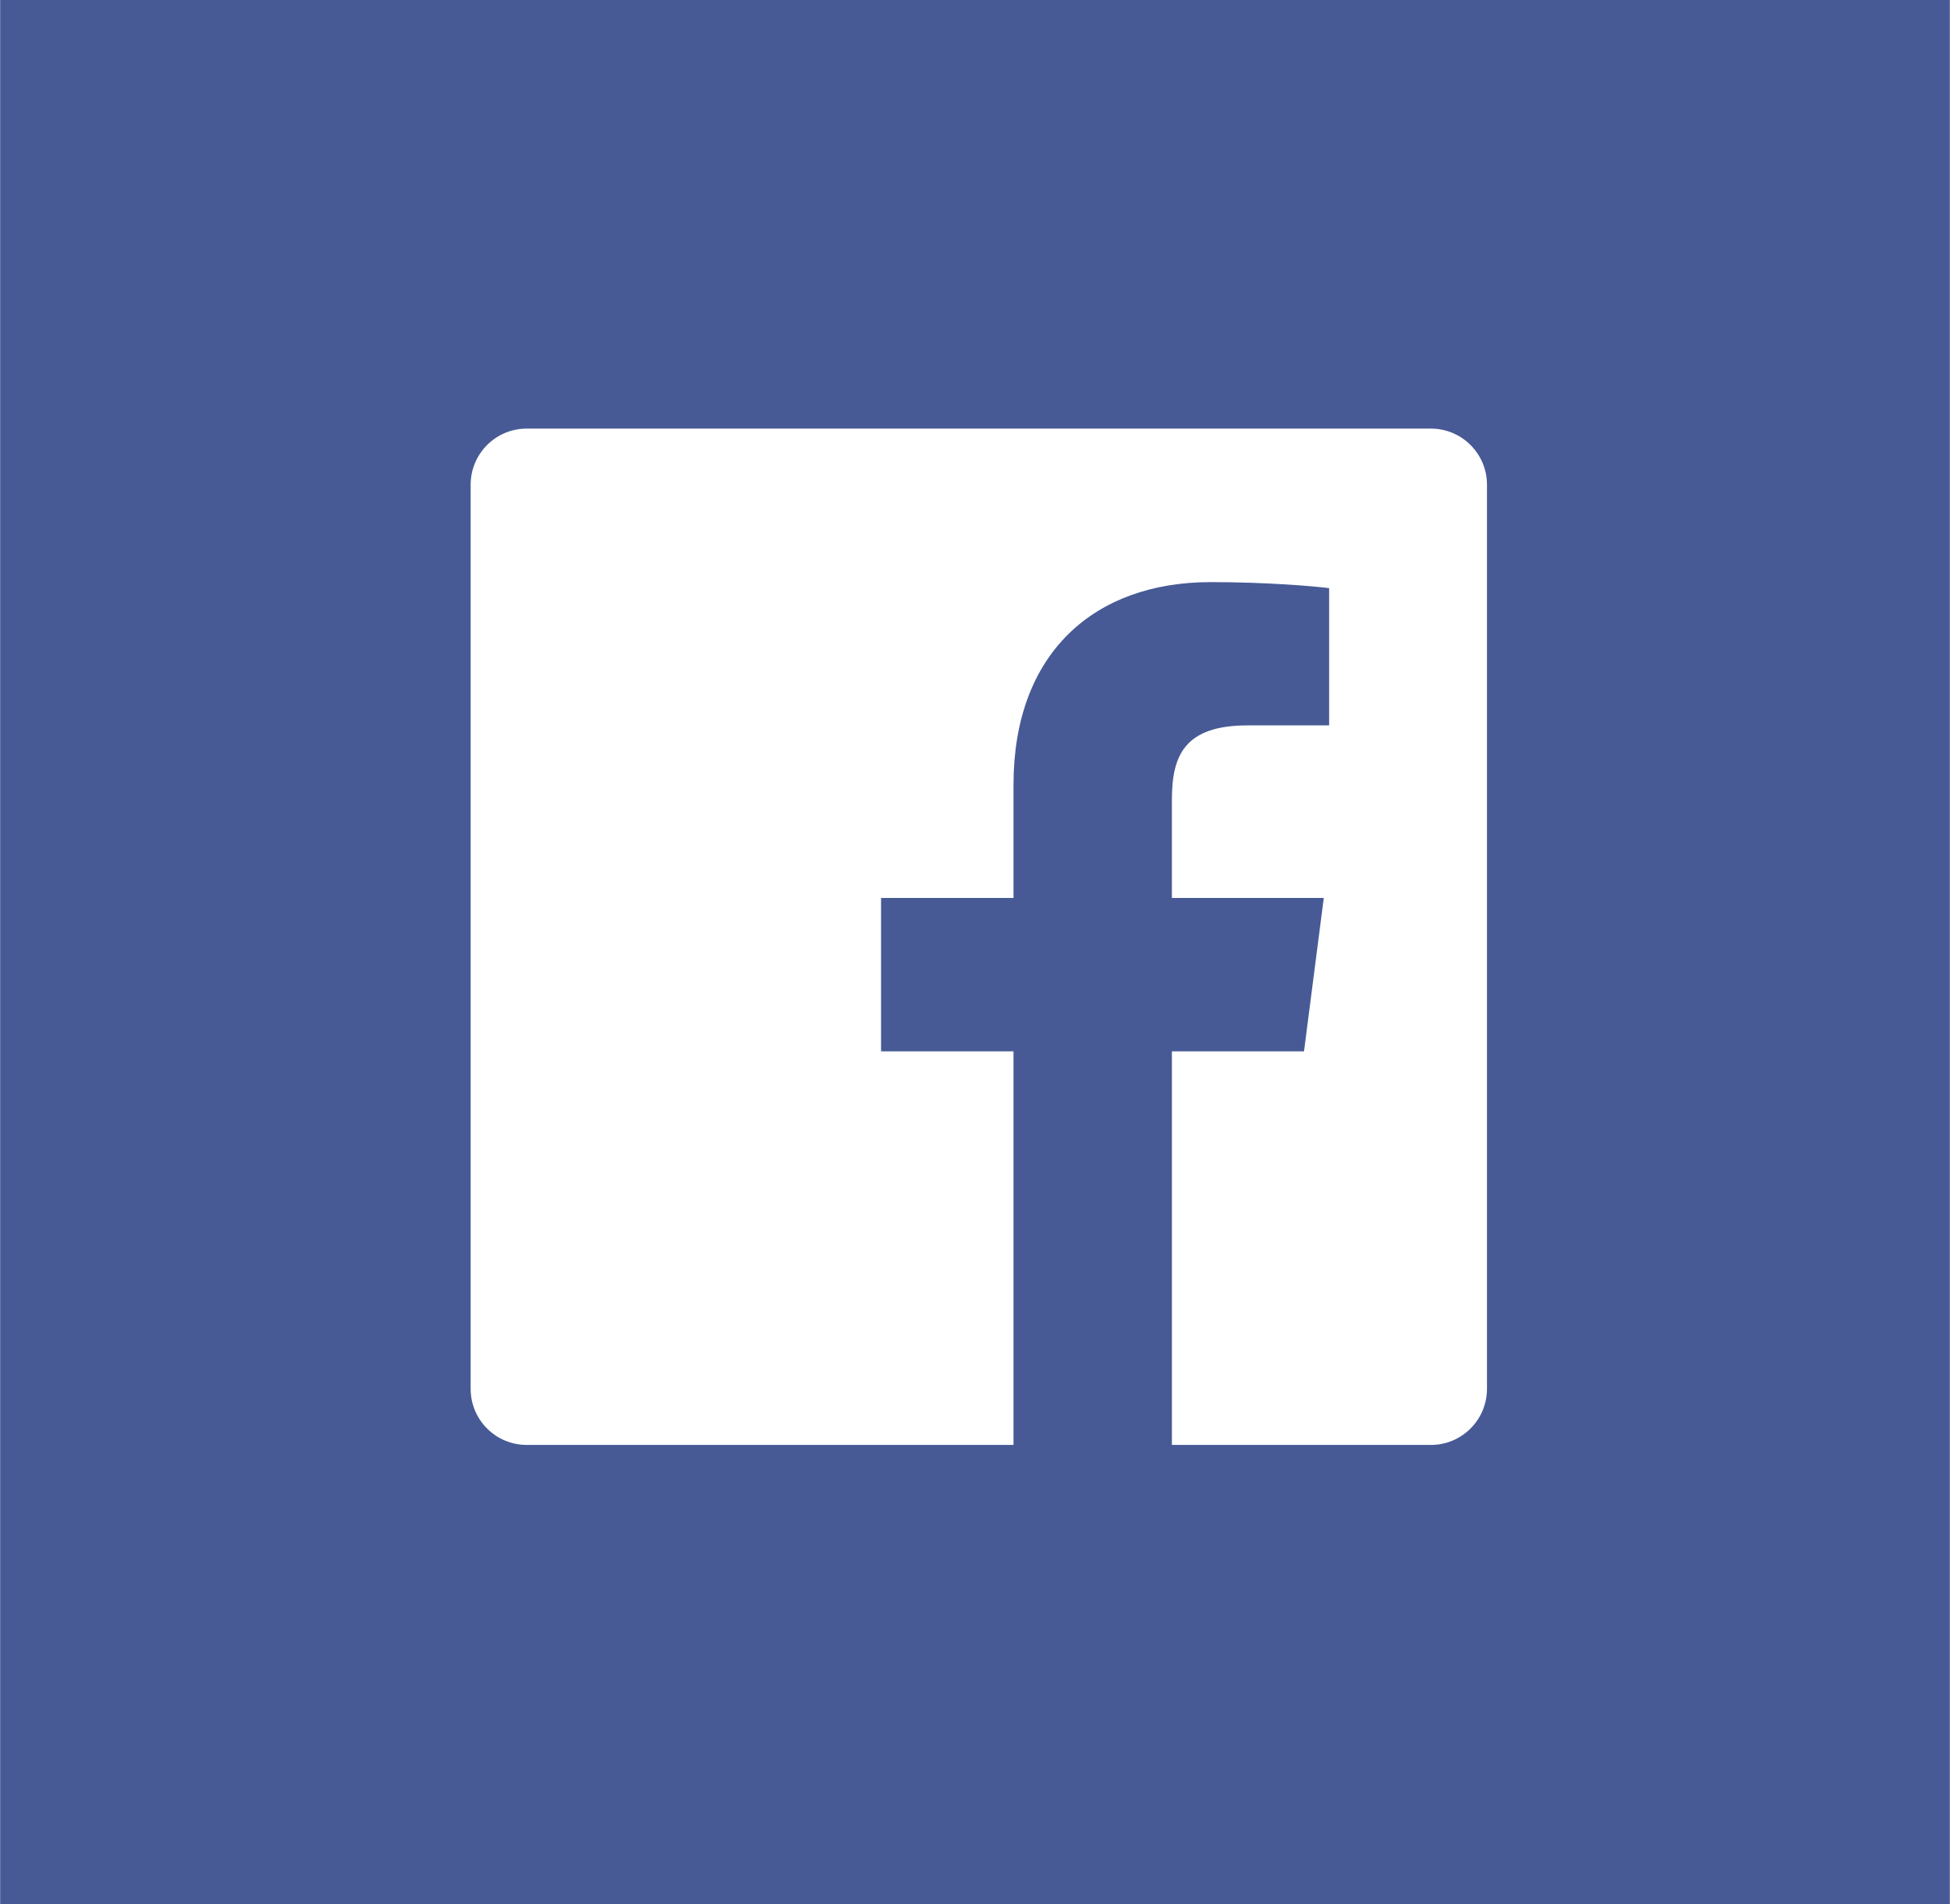 facebook-icon-white-logo-png-transparent